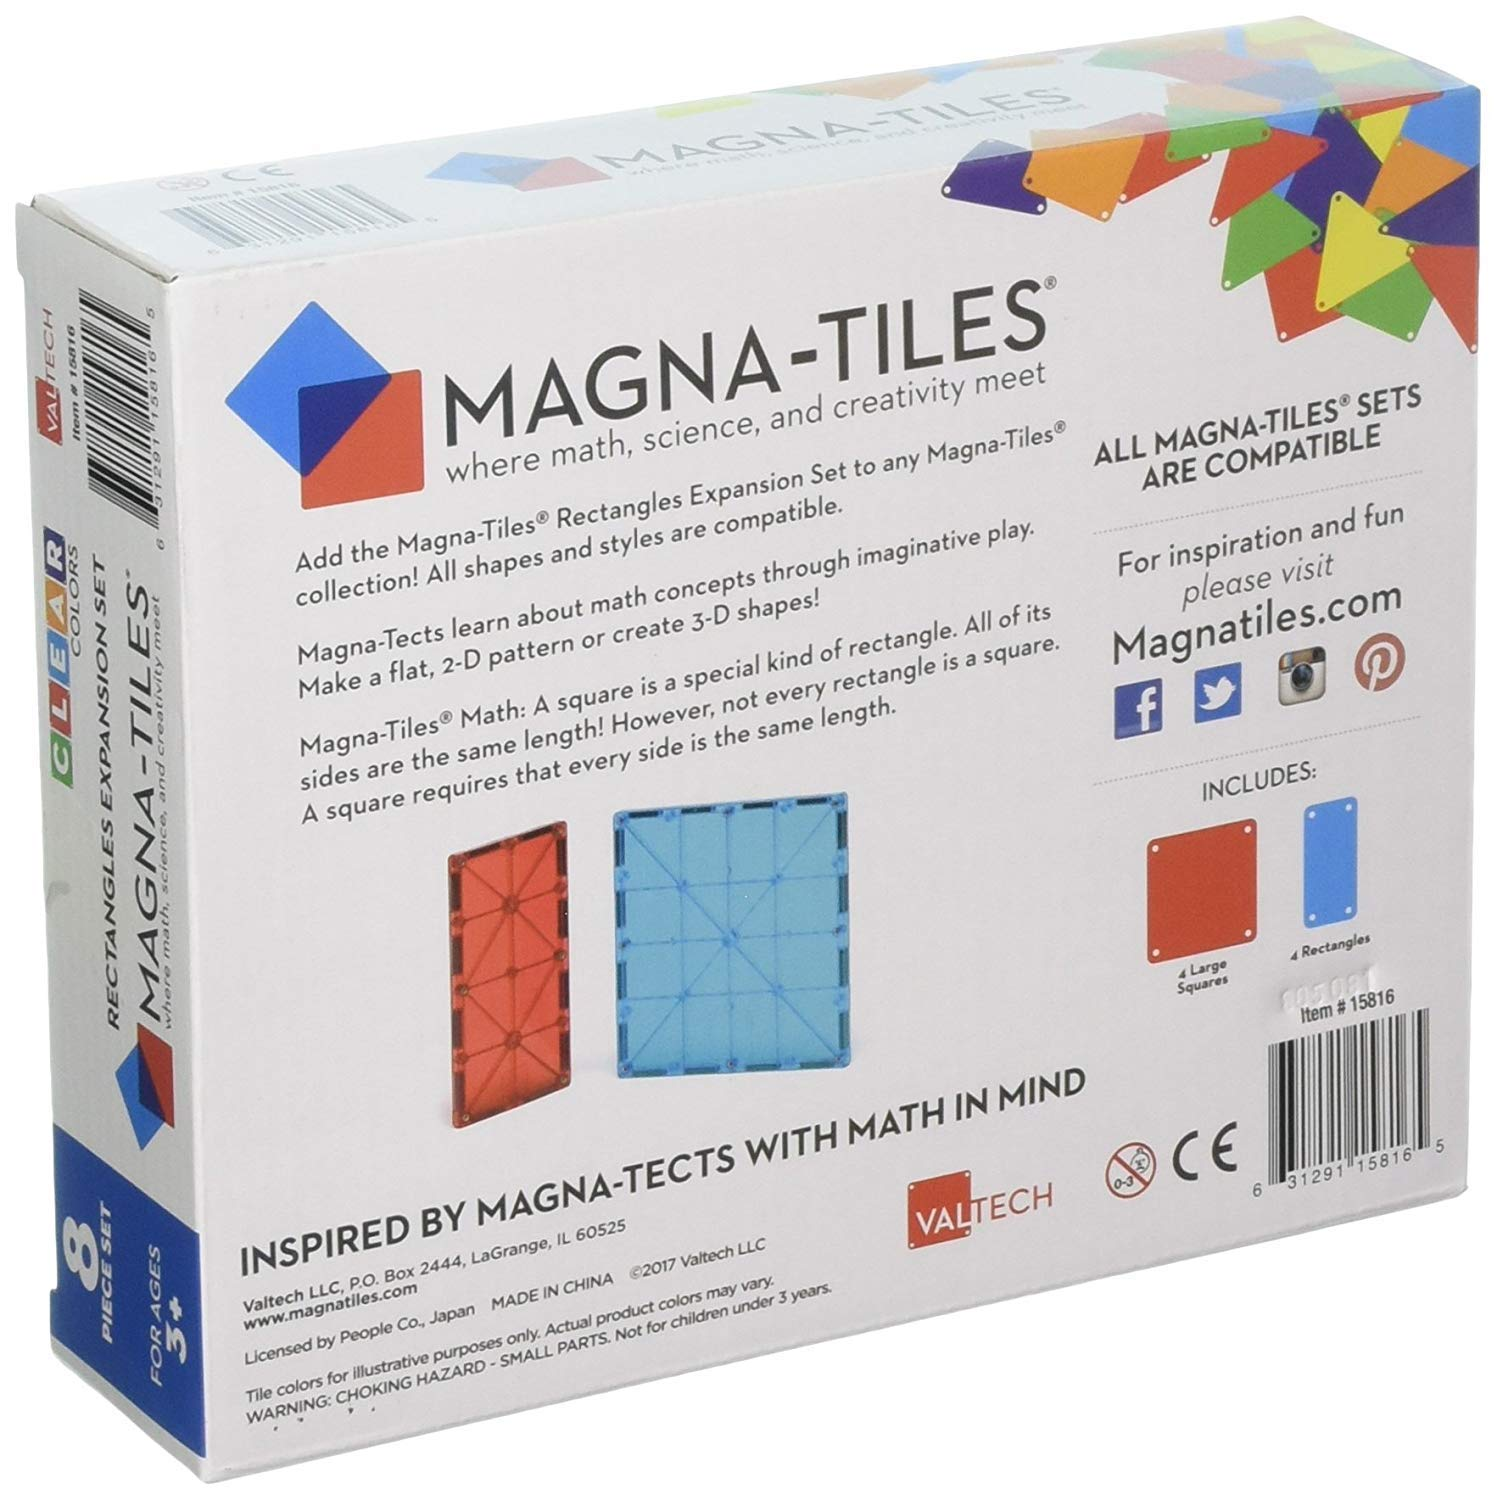 Magna-Tiles 32-Piece Clear Colors Set - The Original, Award-Winning Magnetic Building Tiles - Creativity and Educational - STEM Approved Bundled 8-Piece Rectangles Expansion Set - The by Magna-Tiles (Image #7)